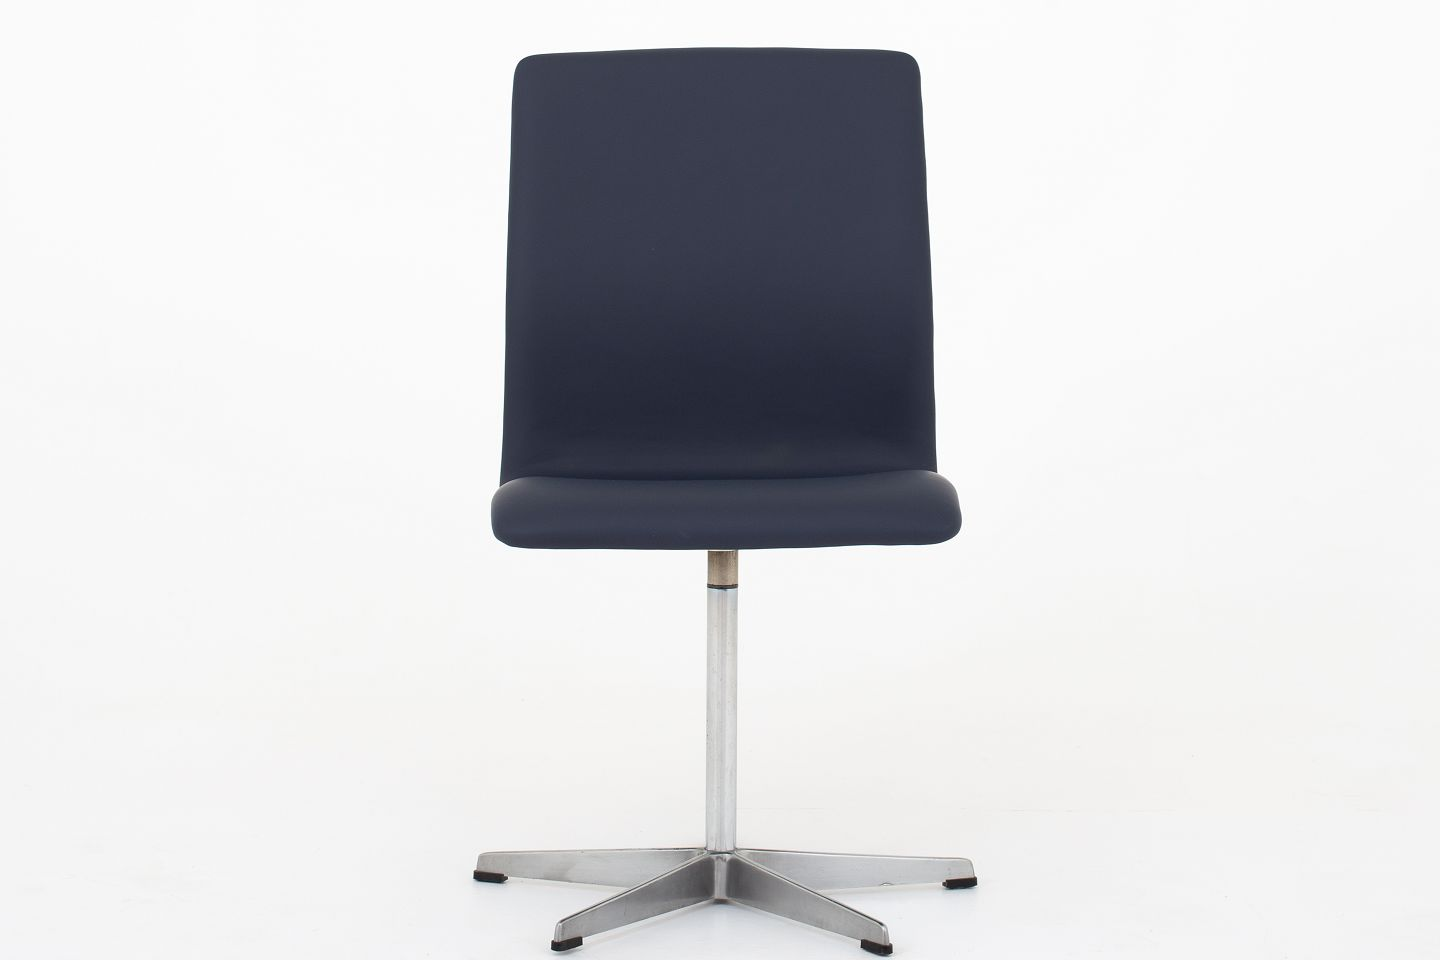 Fritz Hansen Chairs Arne Jacobsen Fritz Hansen Aj 3171 Oxford Chair Reupholstered In Dark Blue Leather Savanne Royal Blue On An Aluminum Frame Klassik Offers